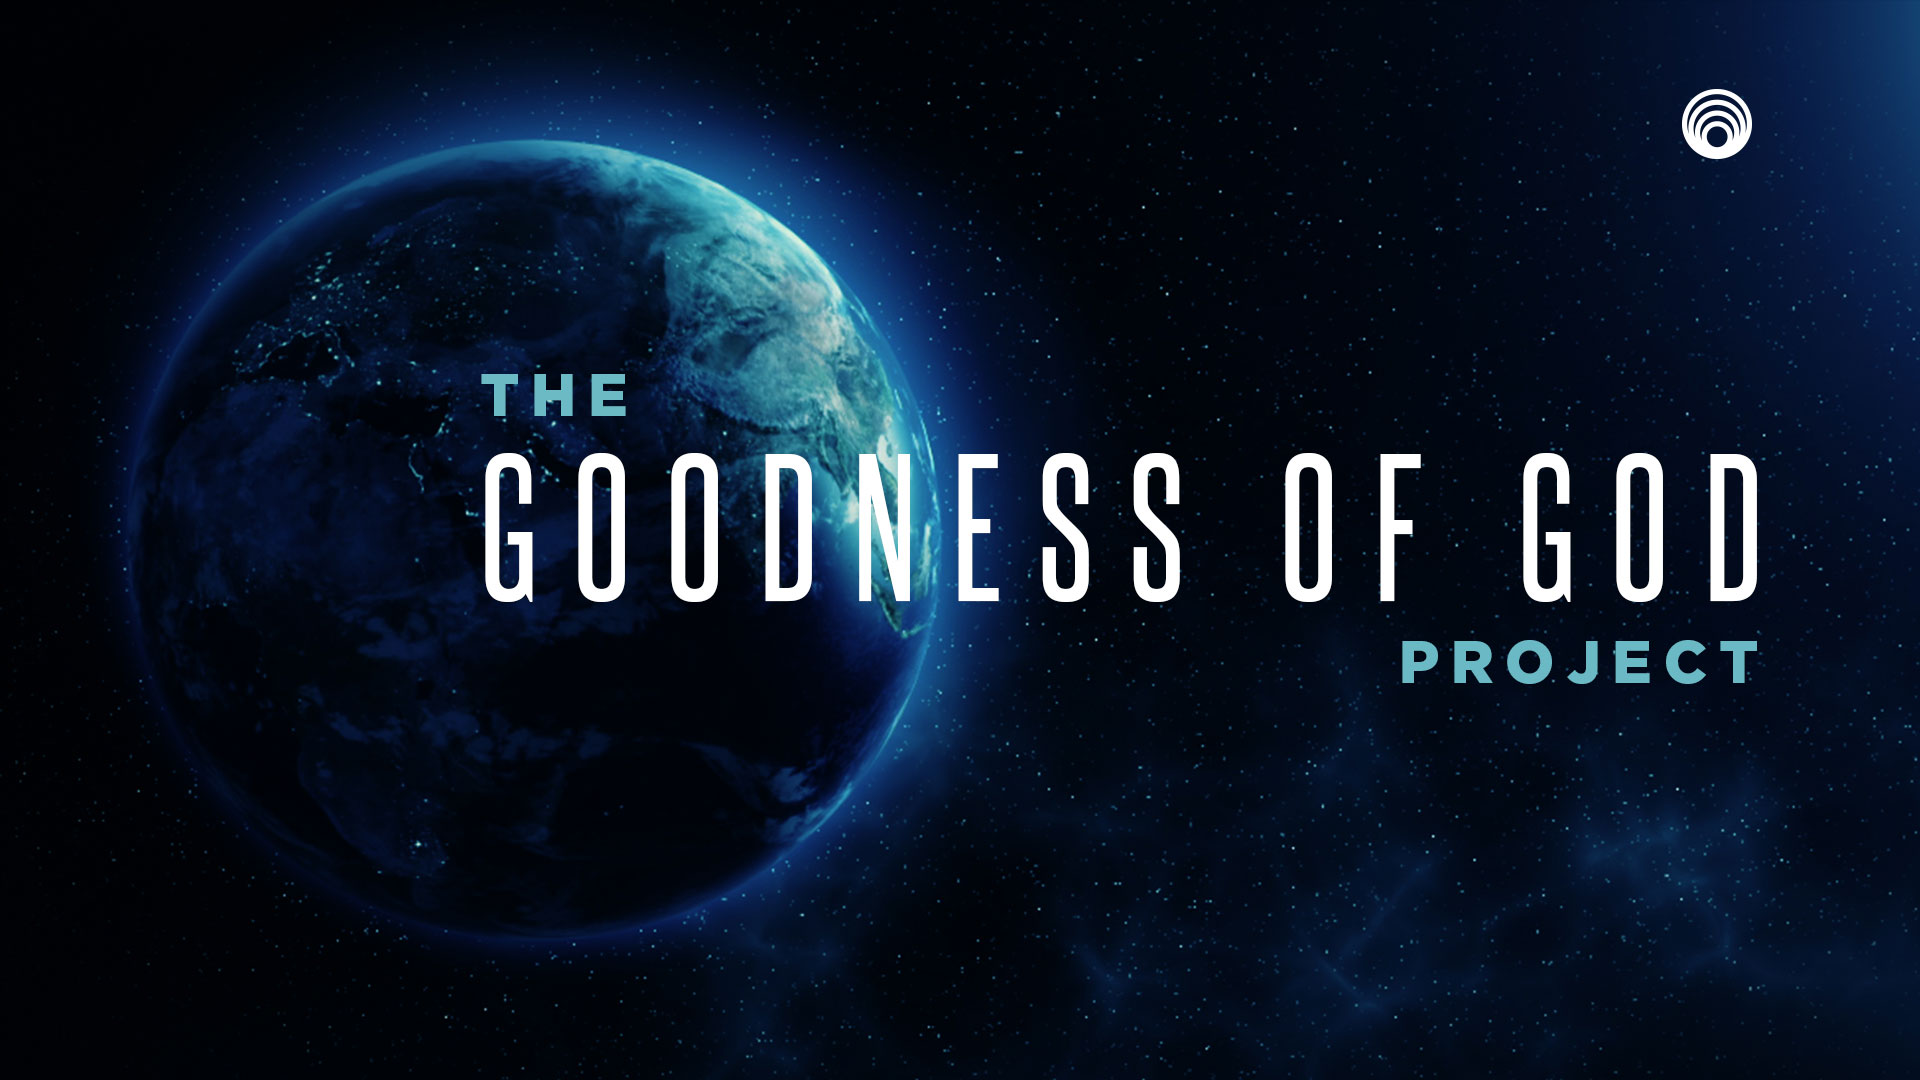 The Goodness Of God Project 01